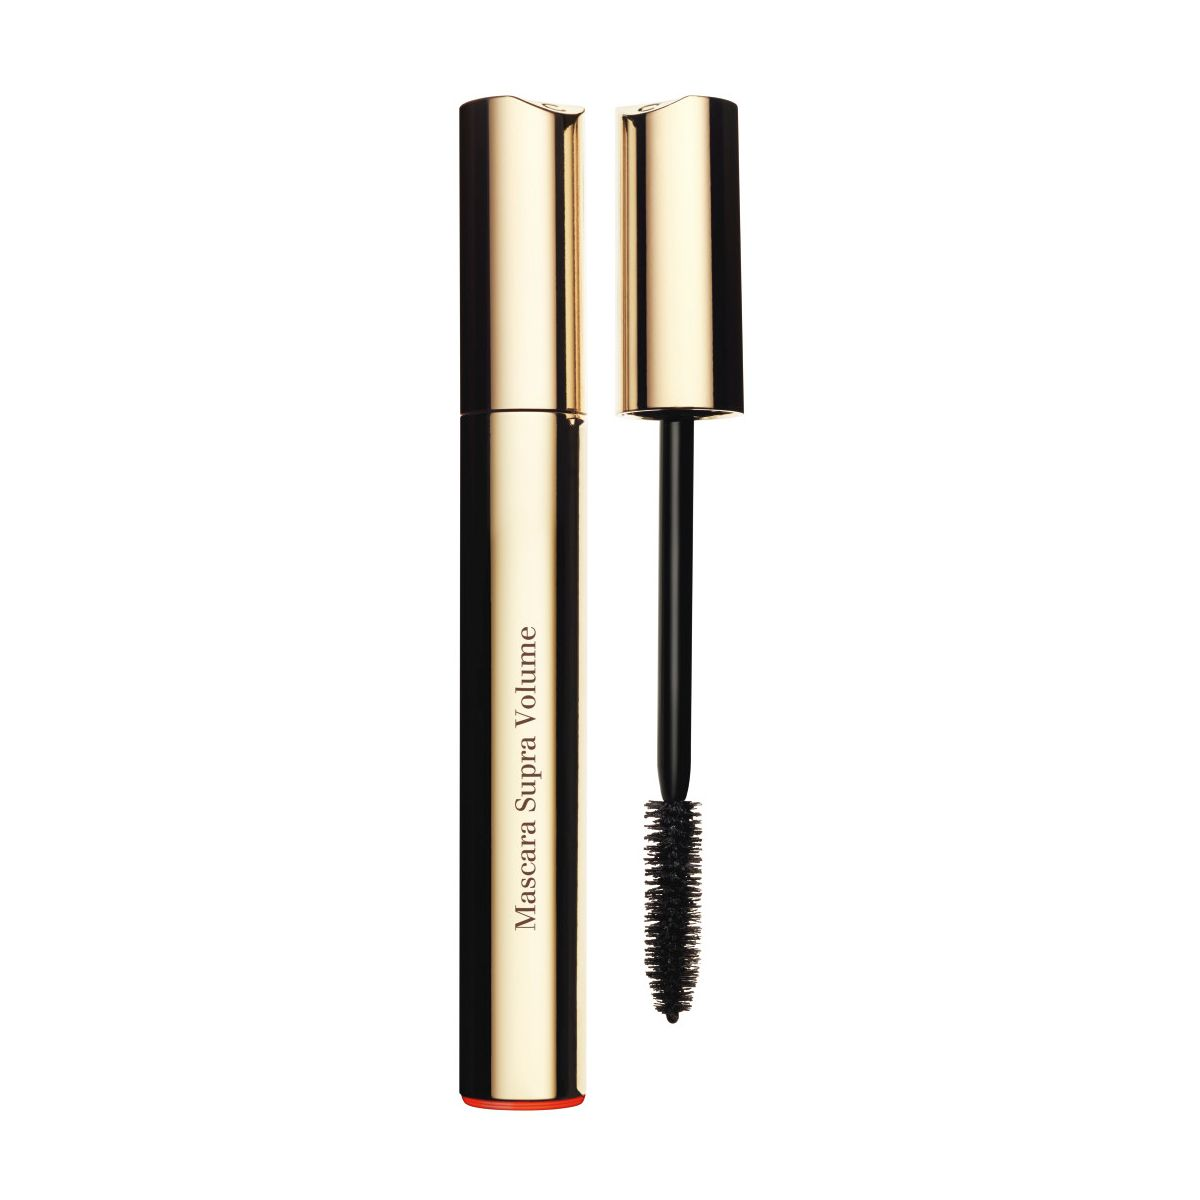 Clarins Mascara Supra Volume Black